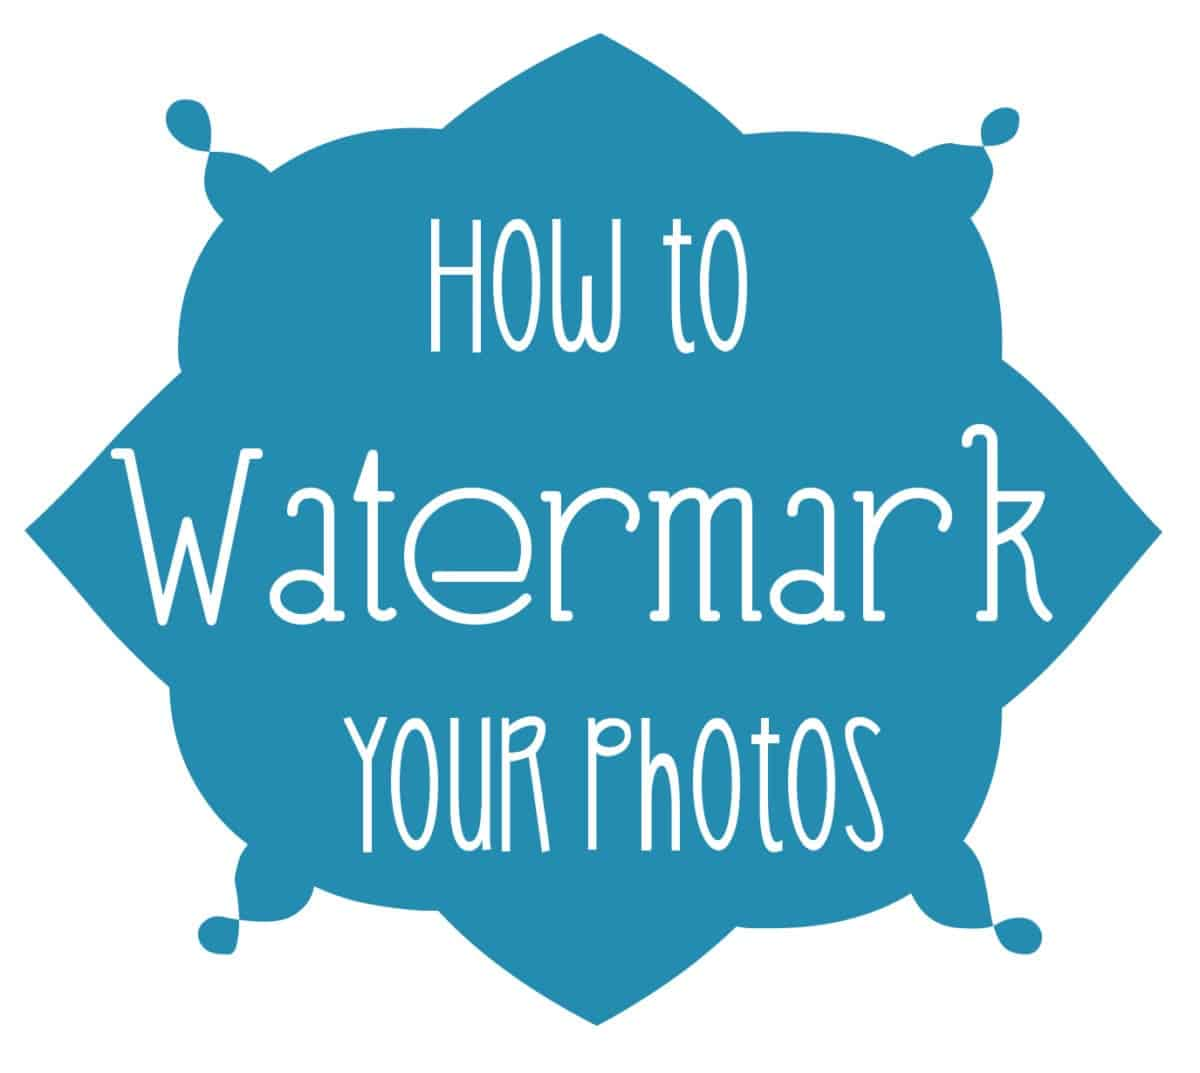 How to Watermark Photos